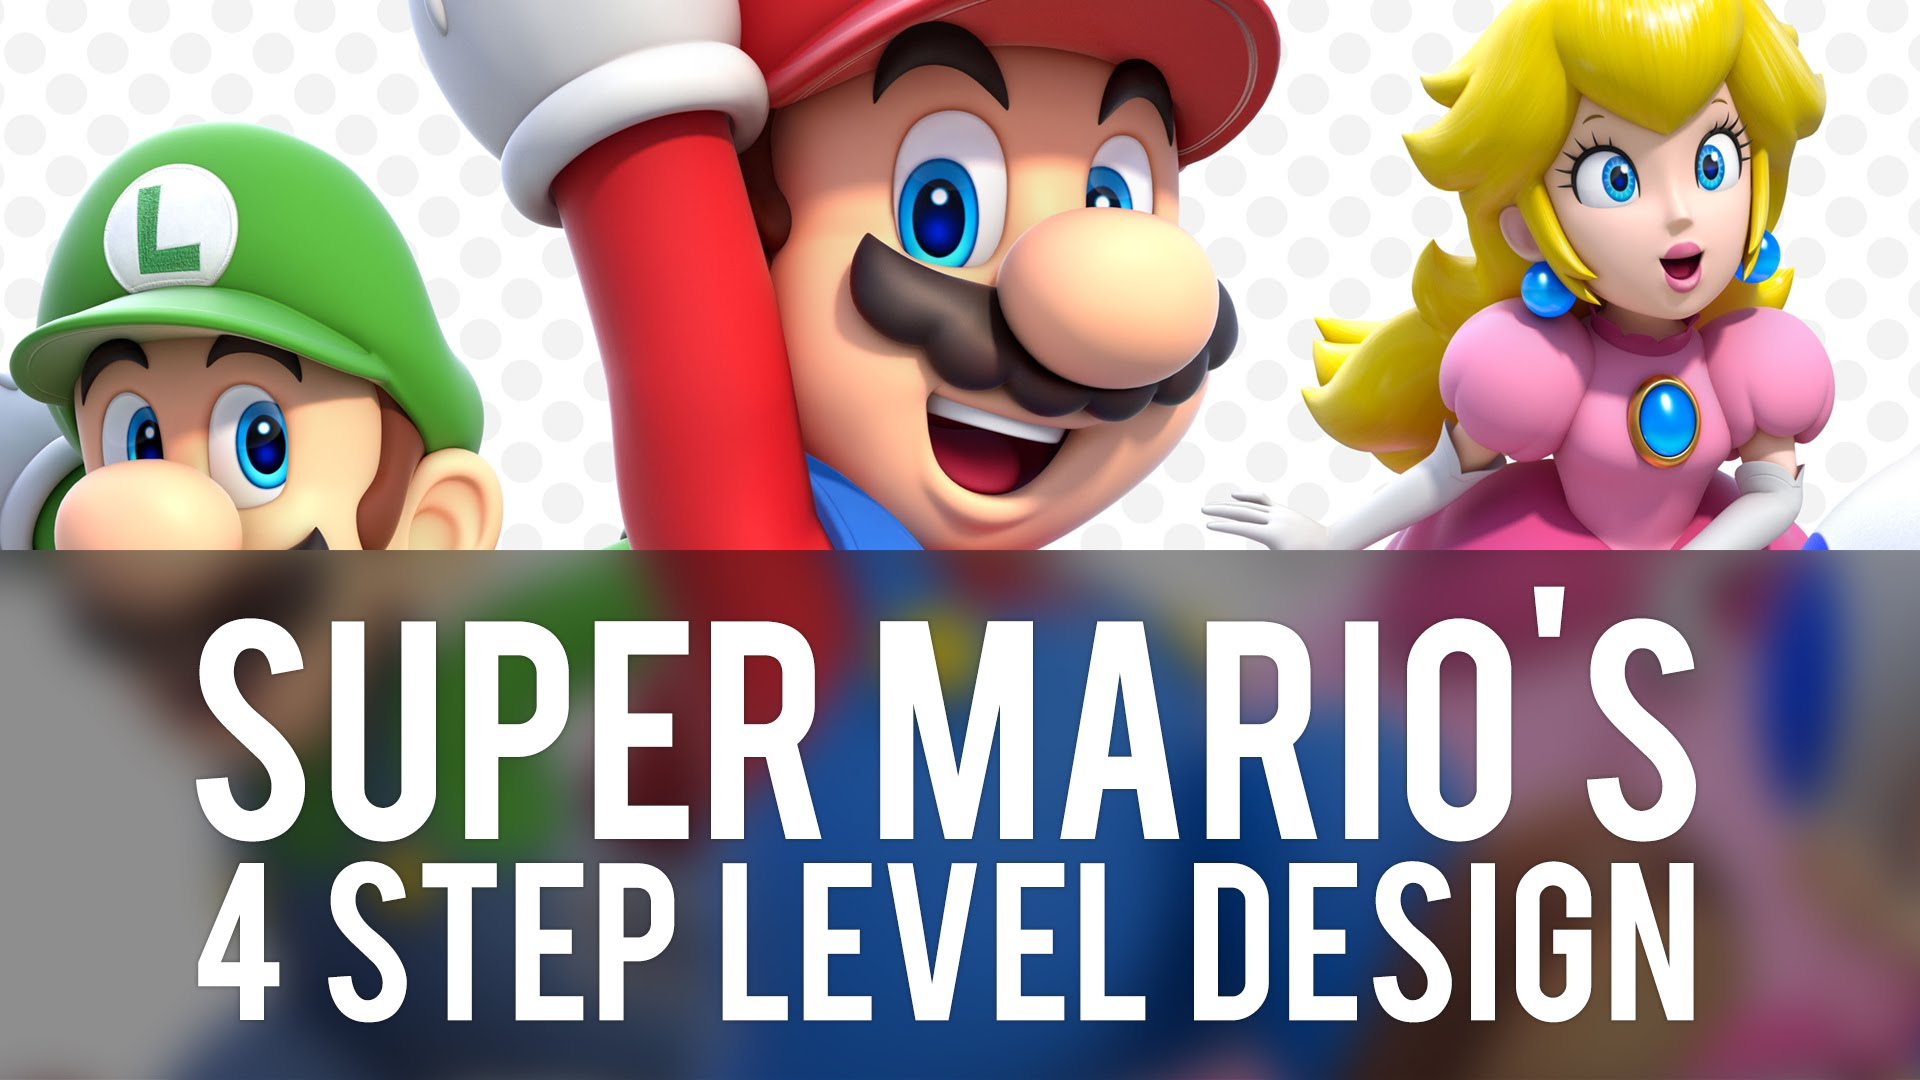 A Detailed Look at the Video Game Level Design in 'Super Mario 3D World'